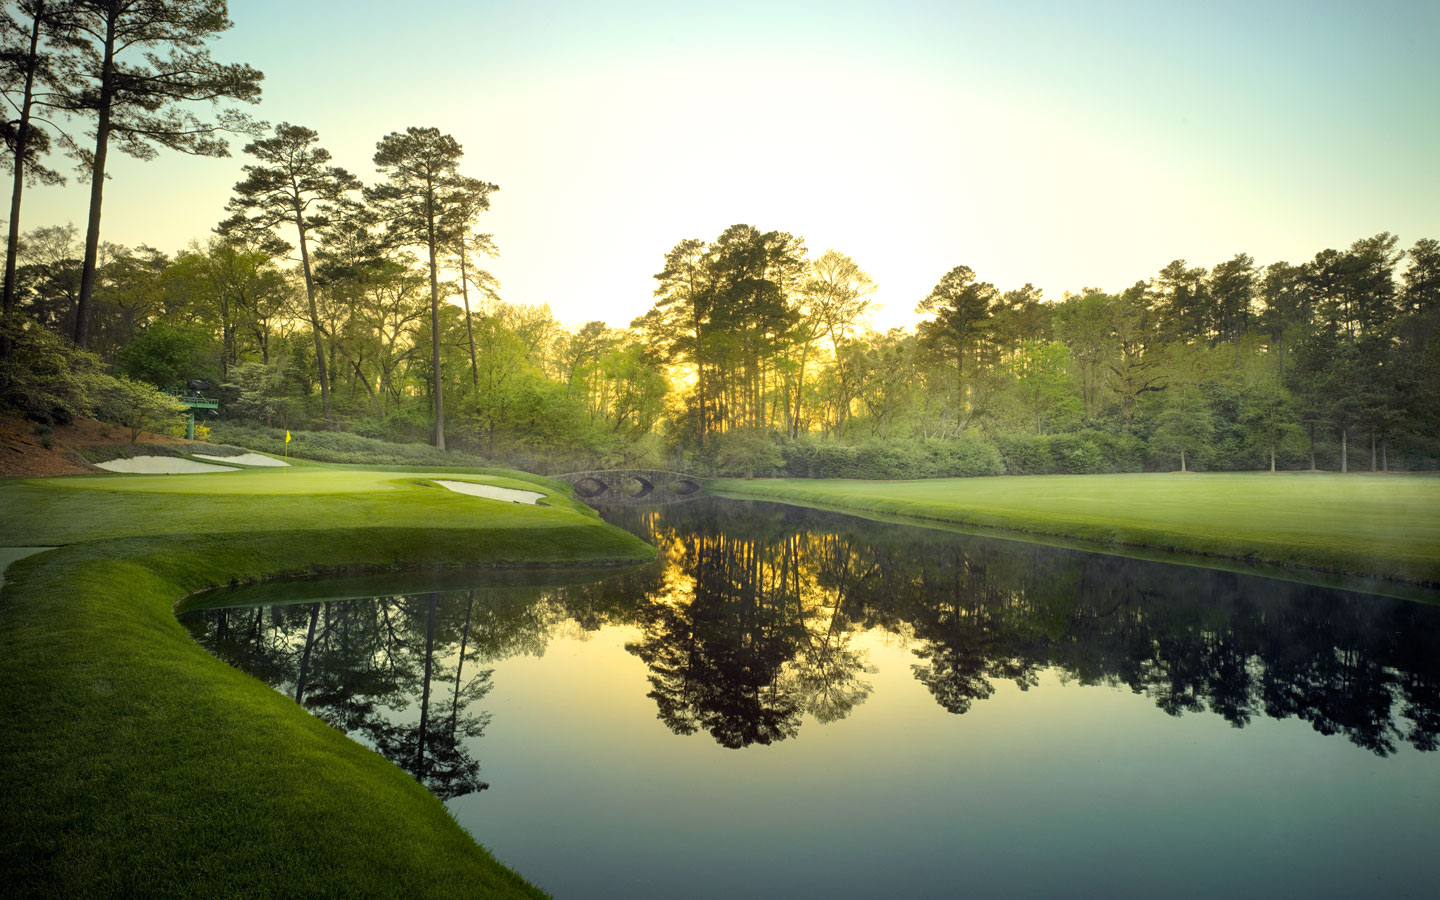 Overview of golf course named Augusta National Golf Club